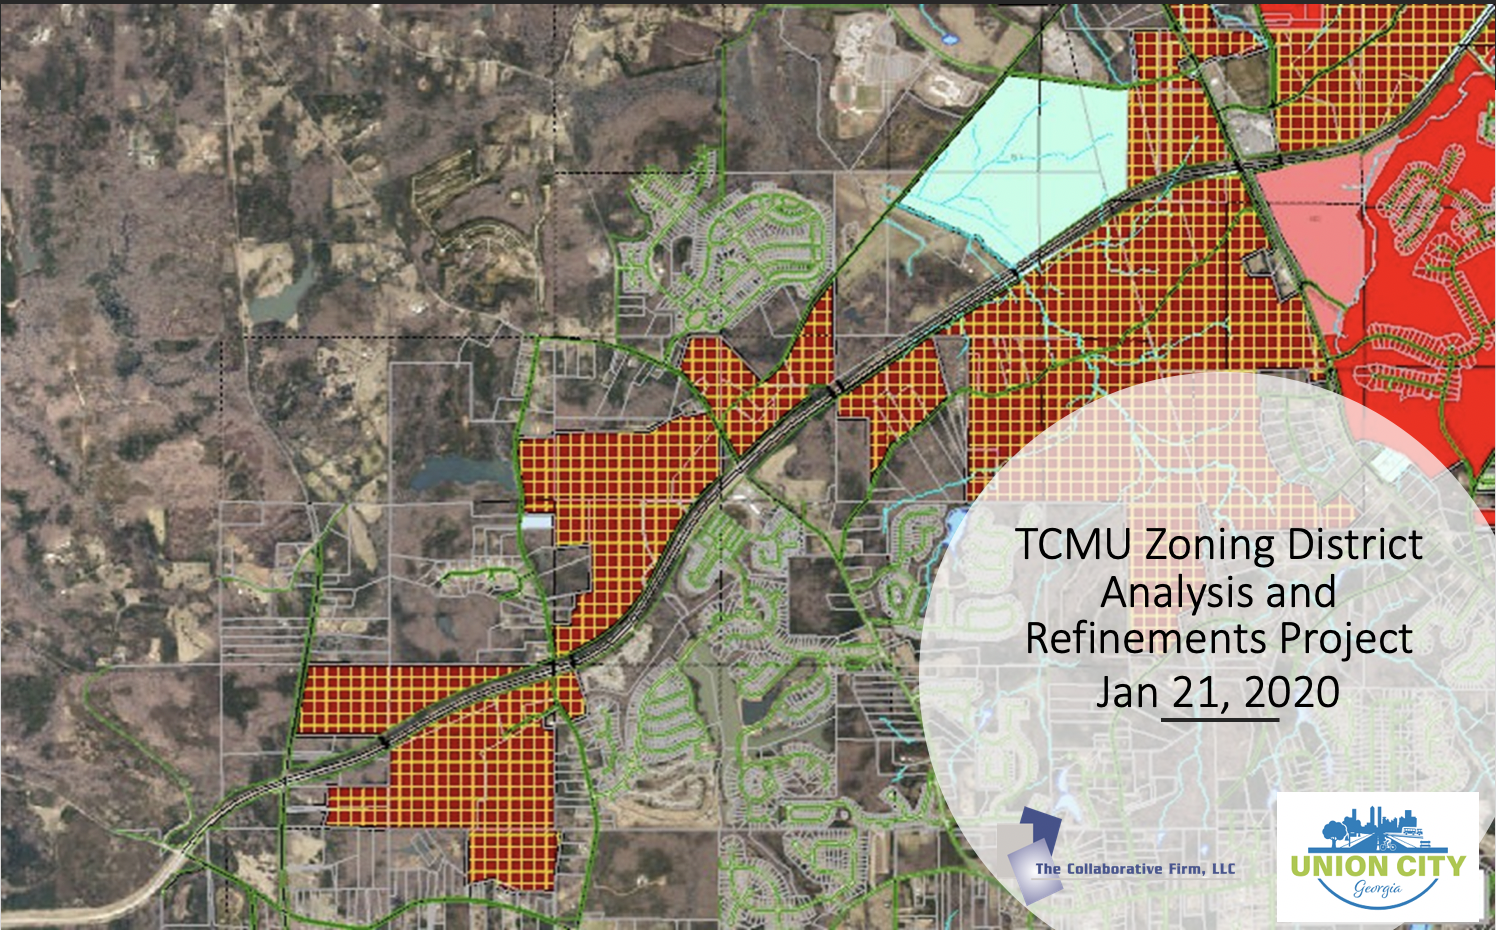 TCMU Zoning District Analysis and Refinements Project